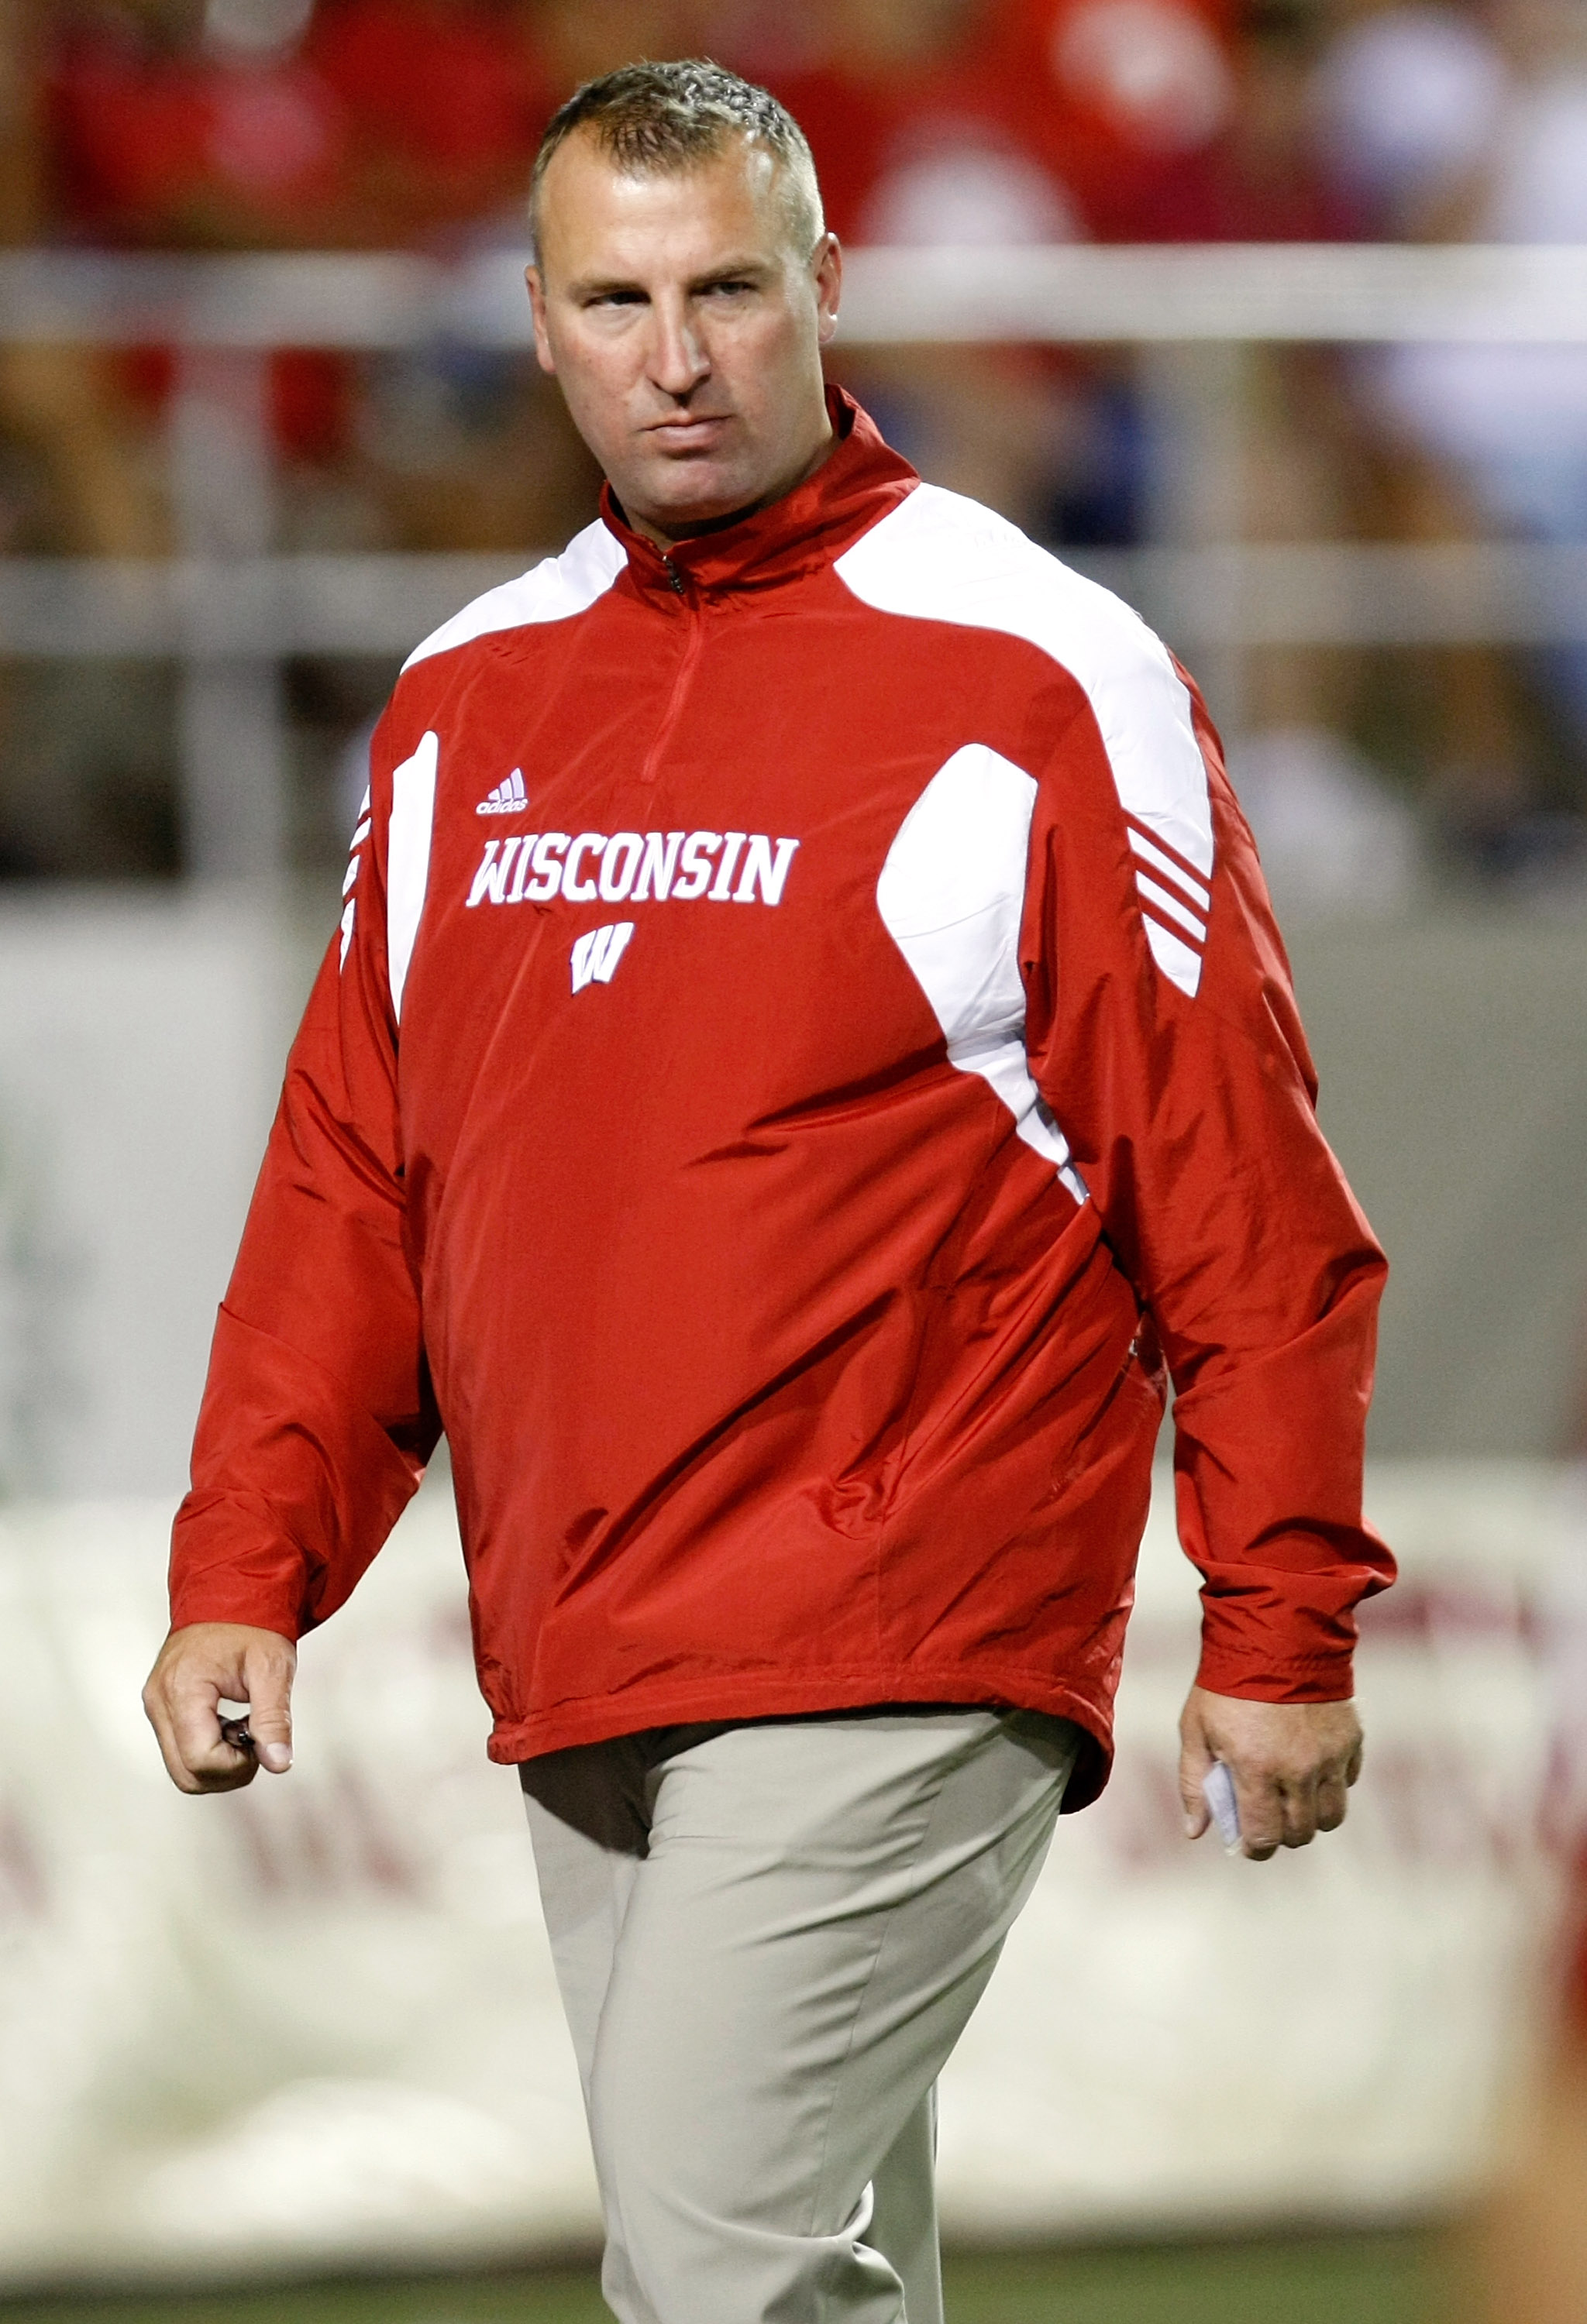 LAS VEGAS - SEPTEMBER 04:  Wisconsin Badgers head coach Bret Bielema watches his team warm up before their game against the UNLV Rebels at Sam Boyd Stadium September 4, 2010 in Las Vegas, Nevada. Wisconsin won 41-21.  (Photo by Ethan Miller/Getty Images)